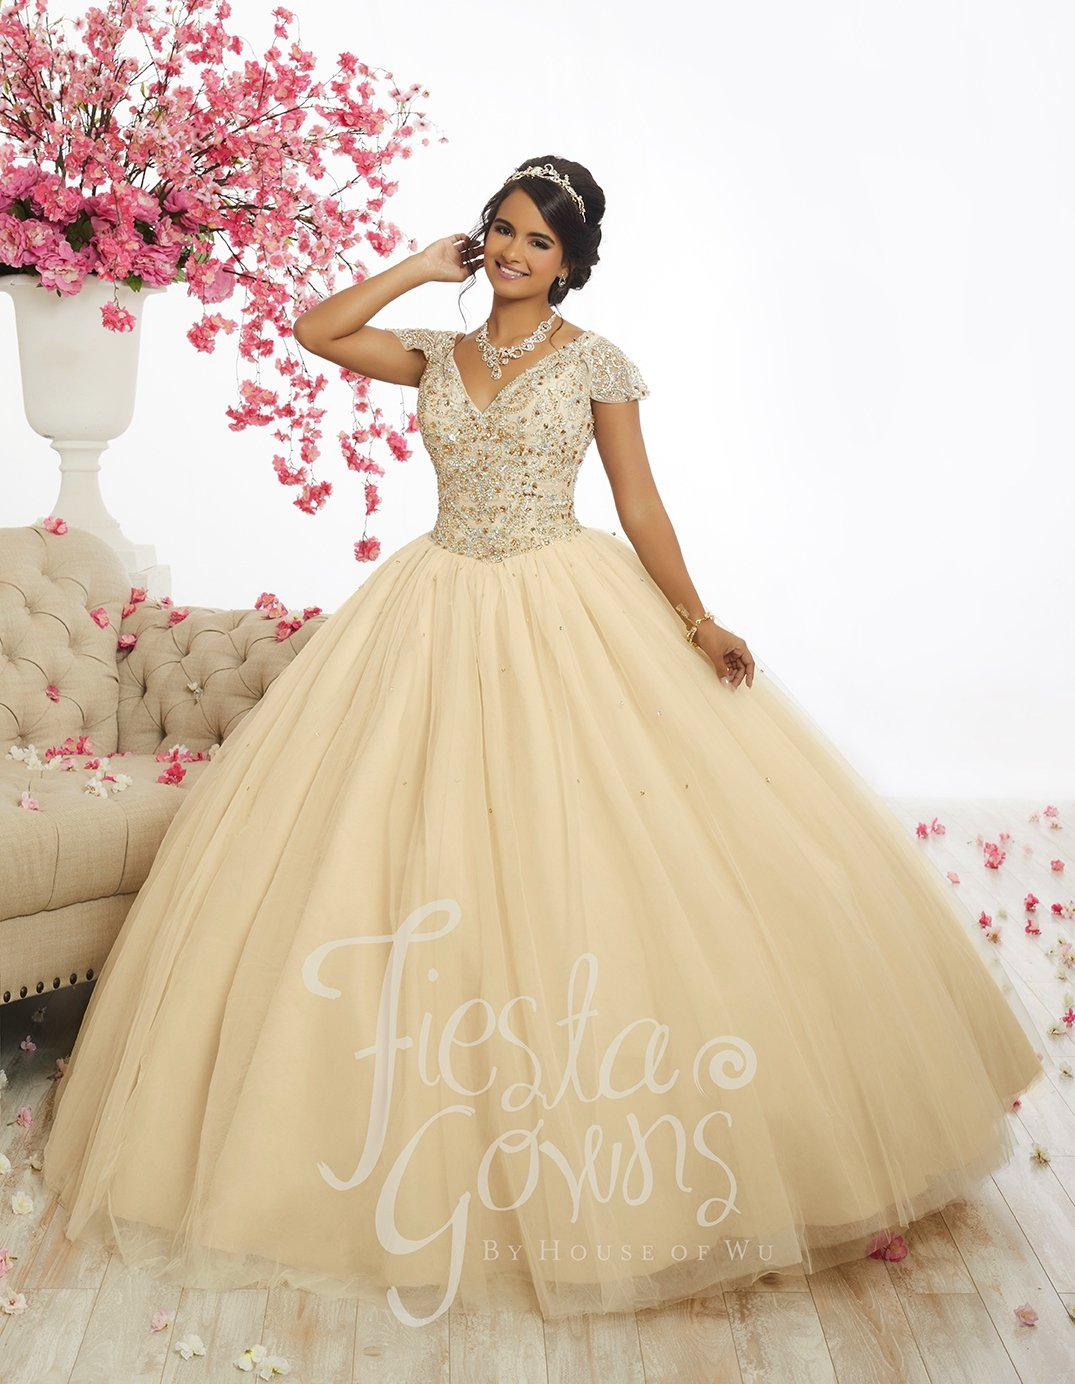 6e593a96fe8d Beaded Cap Sleeve Quinceanera Dress by Fiesta Gowns 56335 in 2019 ...